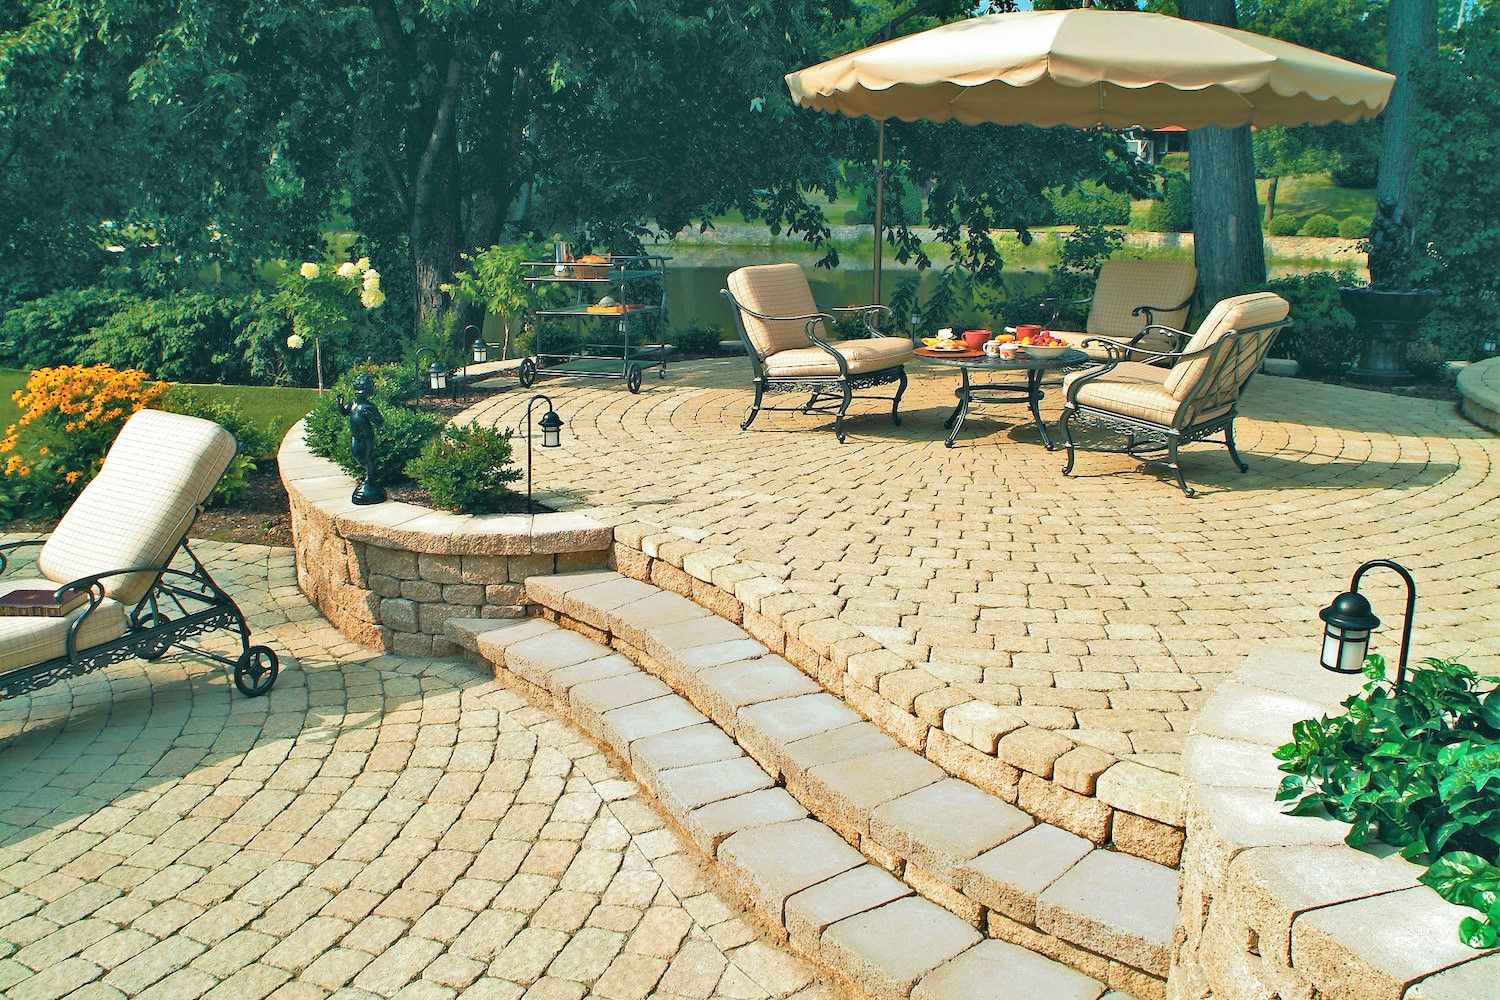 cobble-patio-paving-with-steps-and-retaining-wall